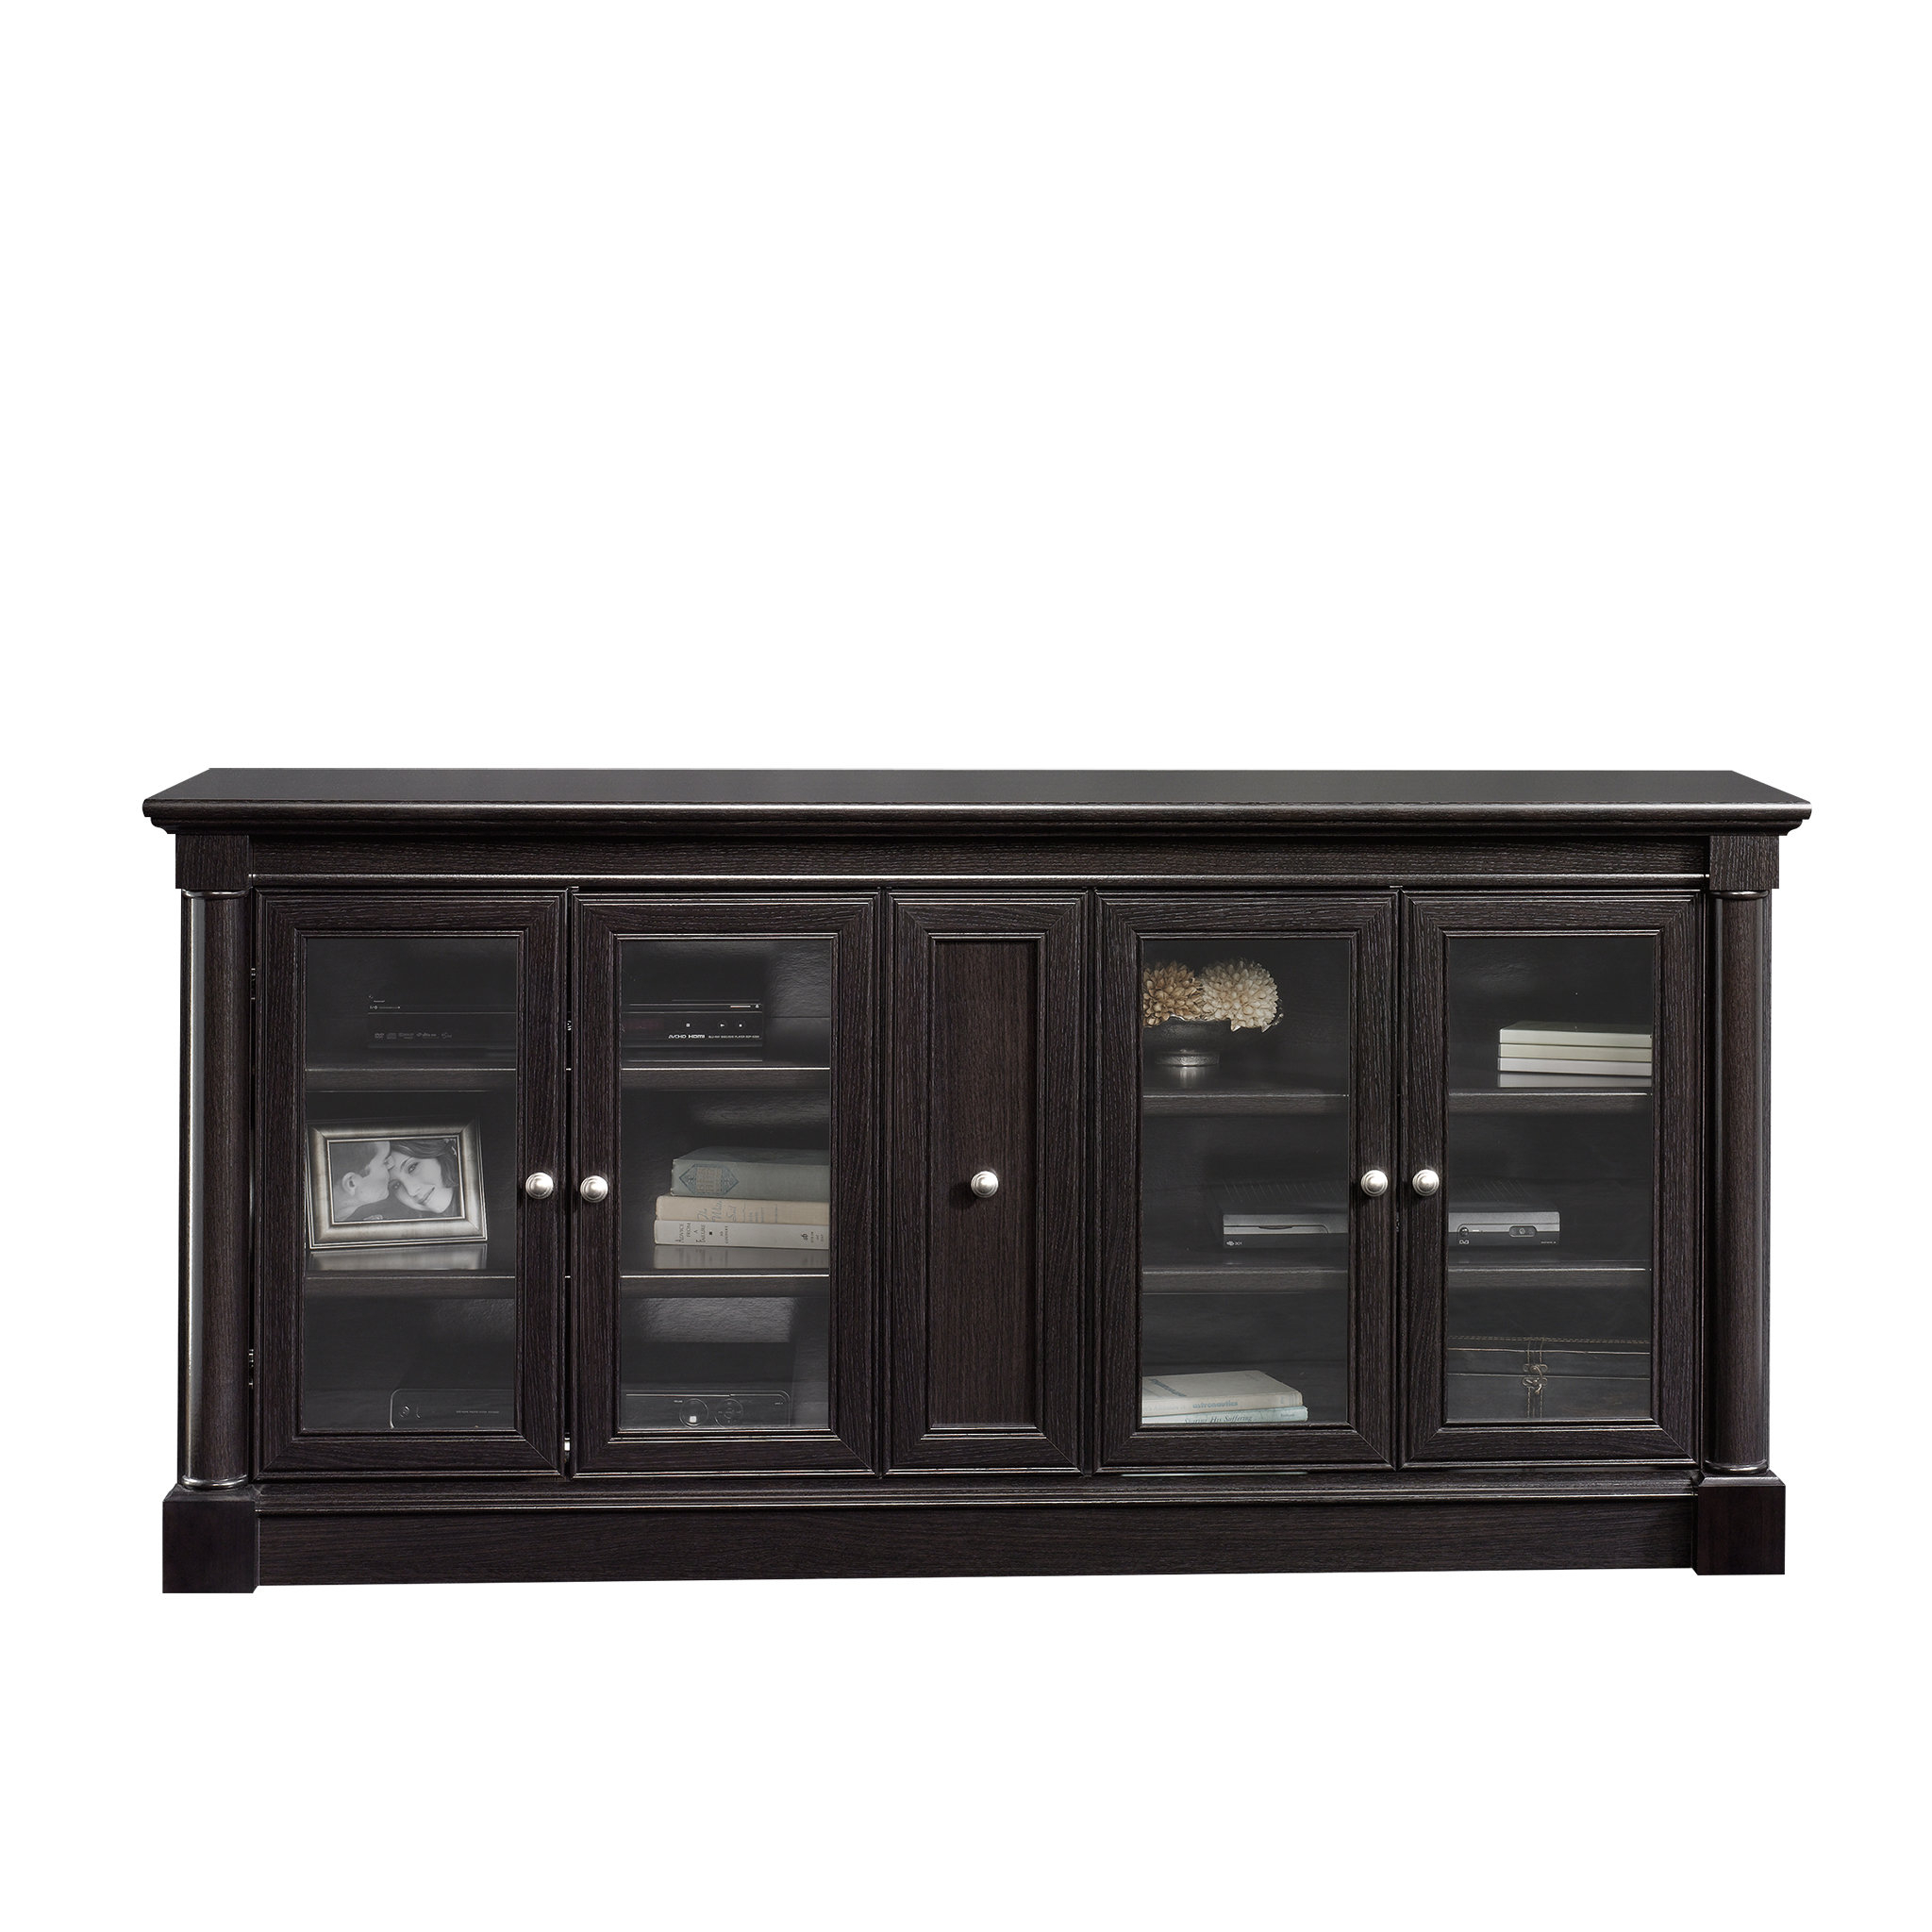 70 Inch Tv Stands | Joss & Main In Annabelle Black 70 Inch Tv Stands (Photo 6 of 30)